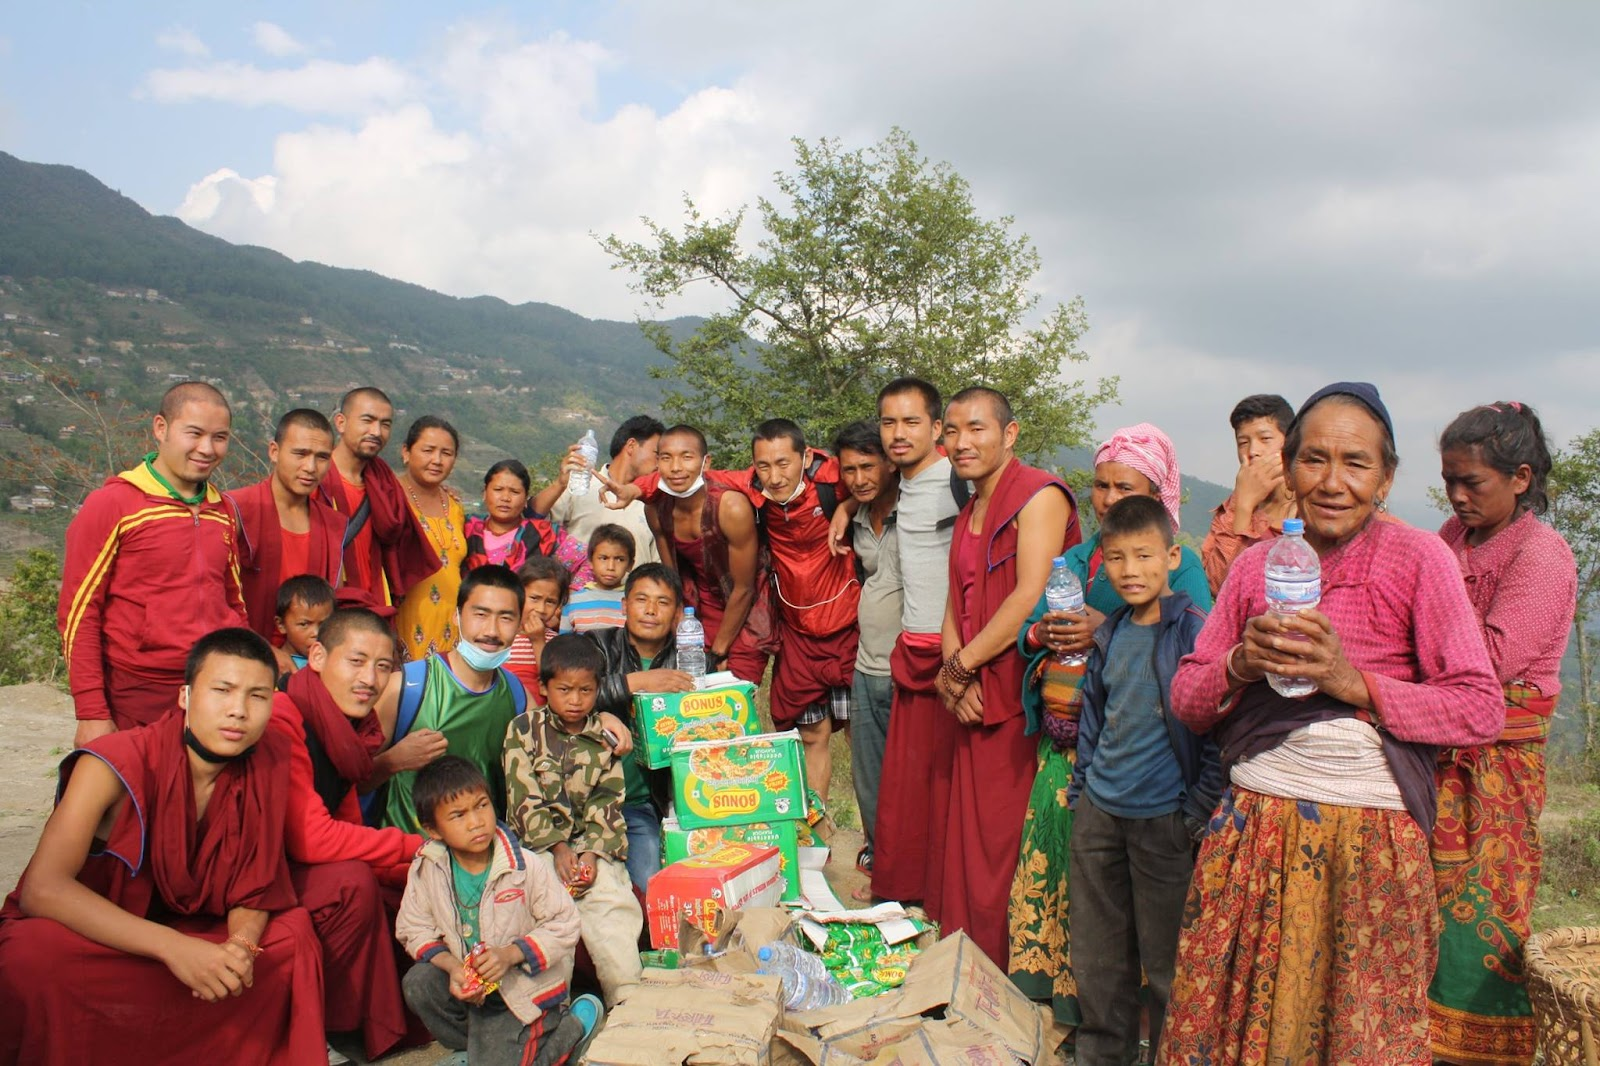 Basic need supplies being offered to the worst hit areas by Kopan monks and nuns, May 2015